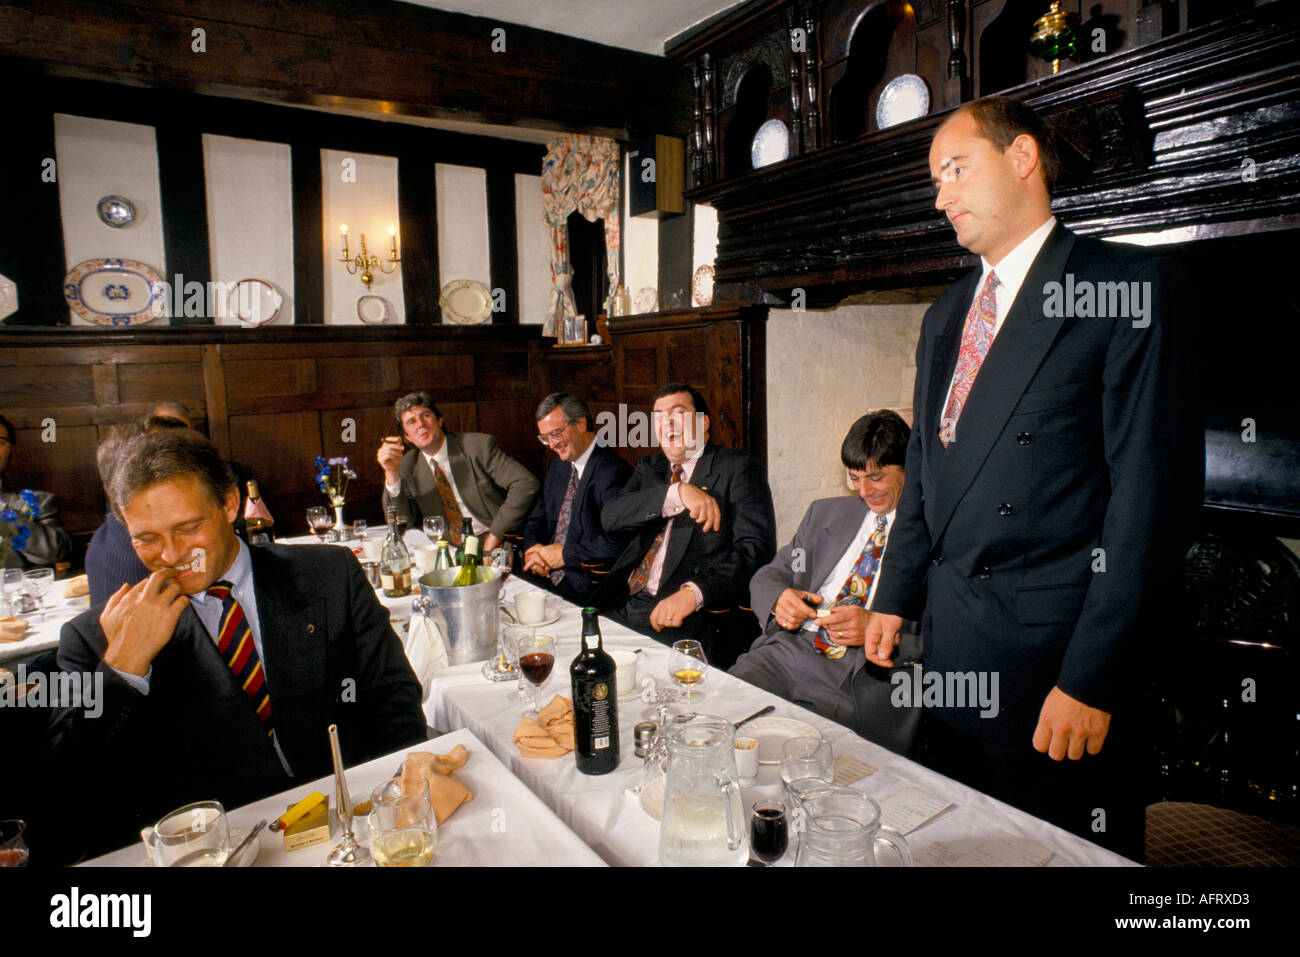 AFTER DINNER SPEAKER,  GRAHAM  DAVIES A  LAWYER FROM  BIRMINGHAM DURING THE DAY. - Stock Image